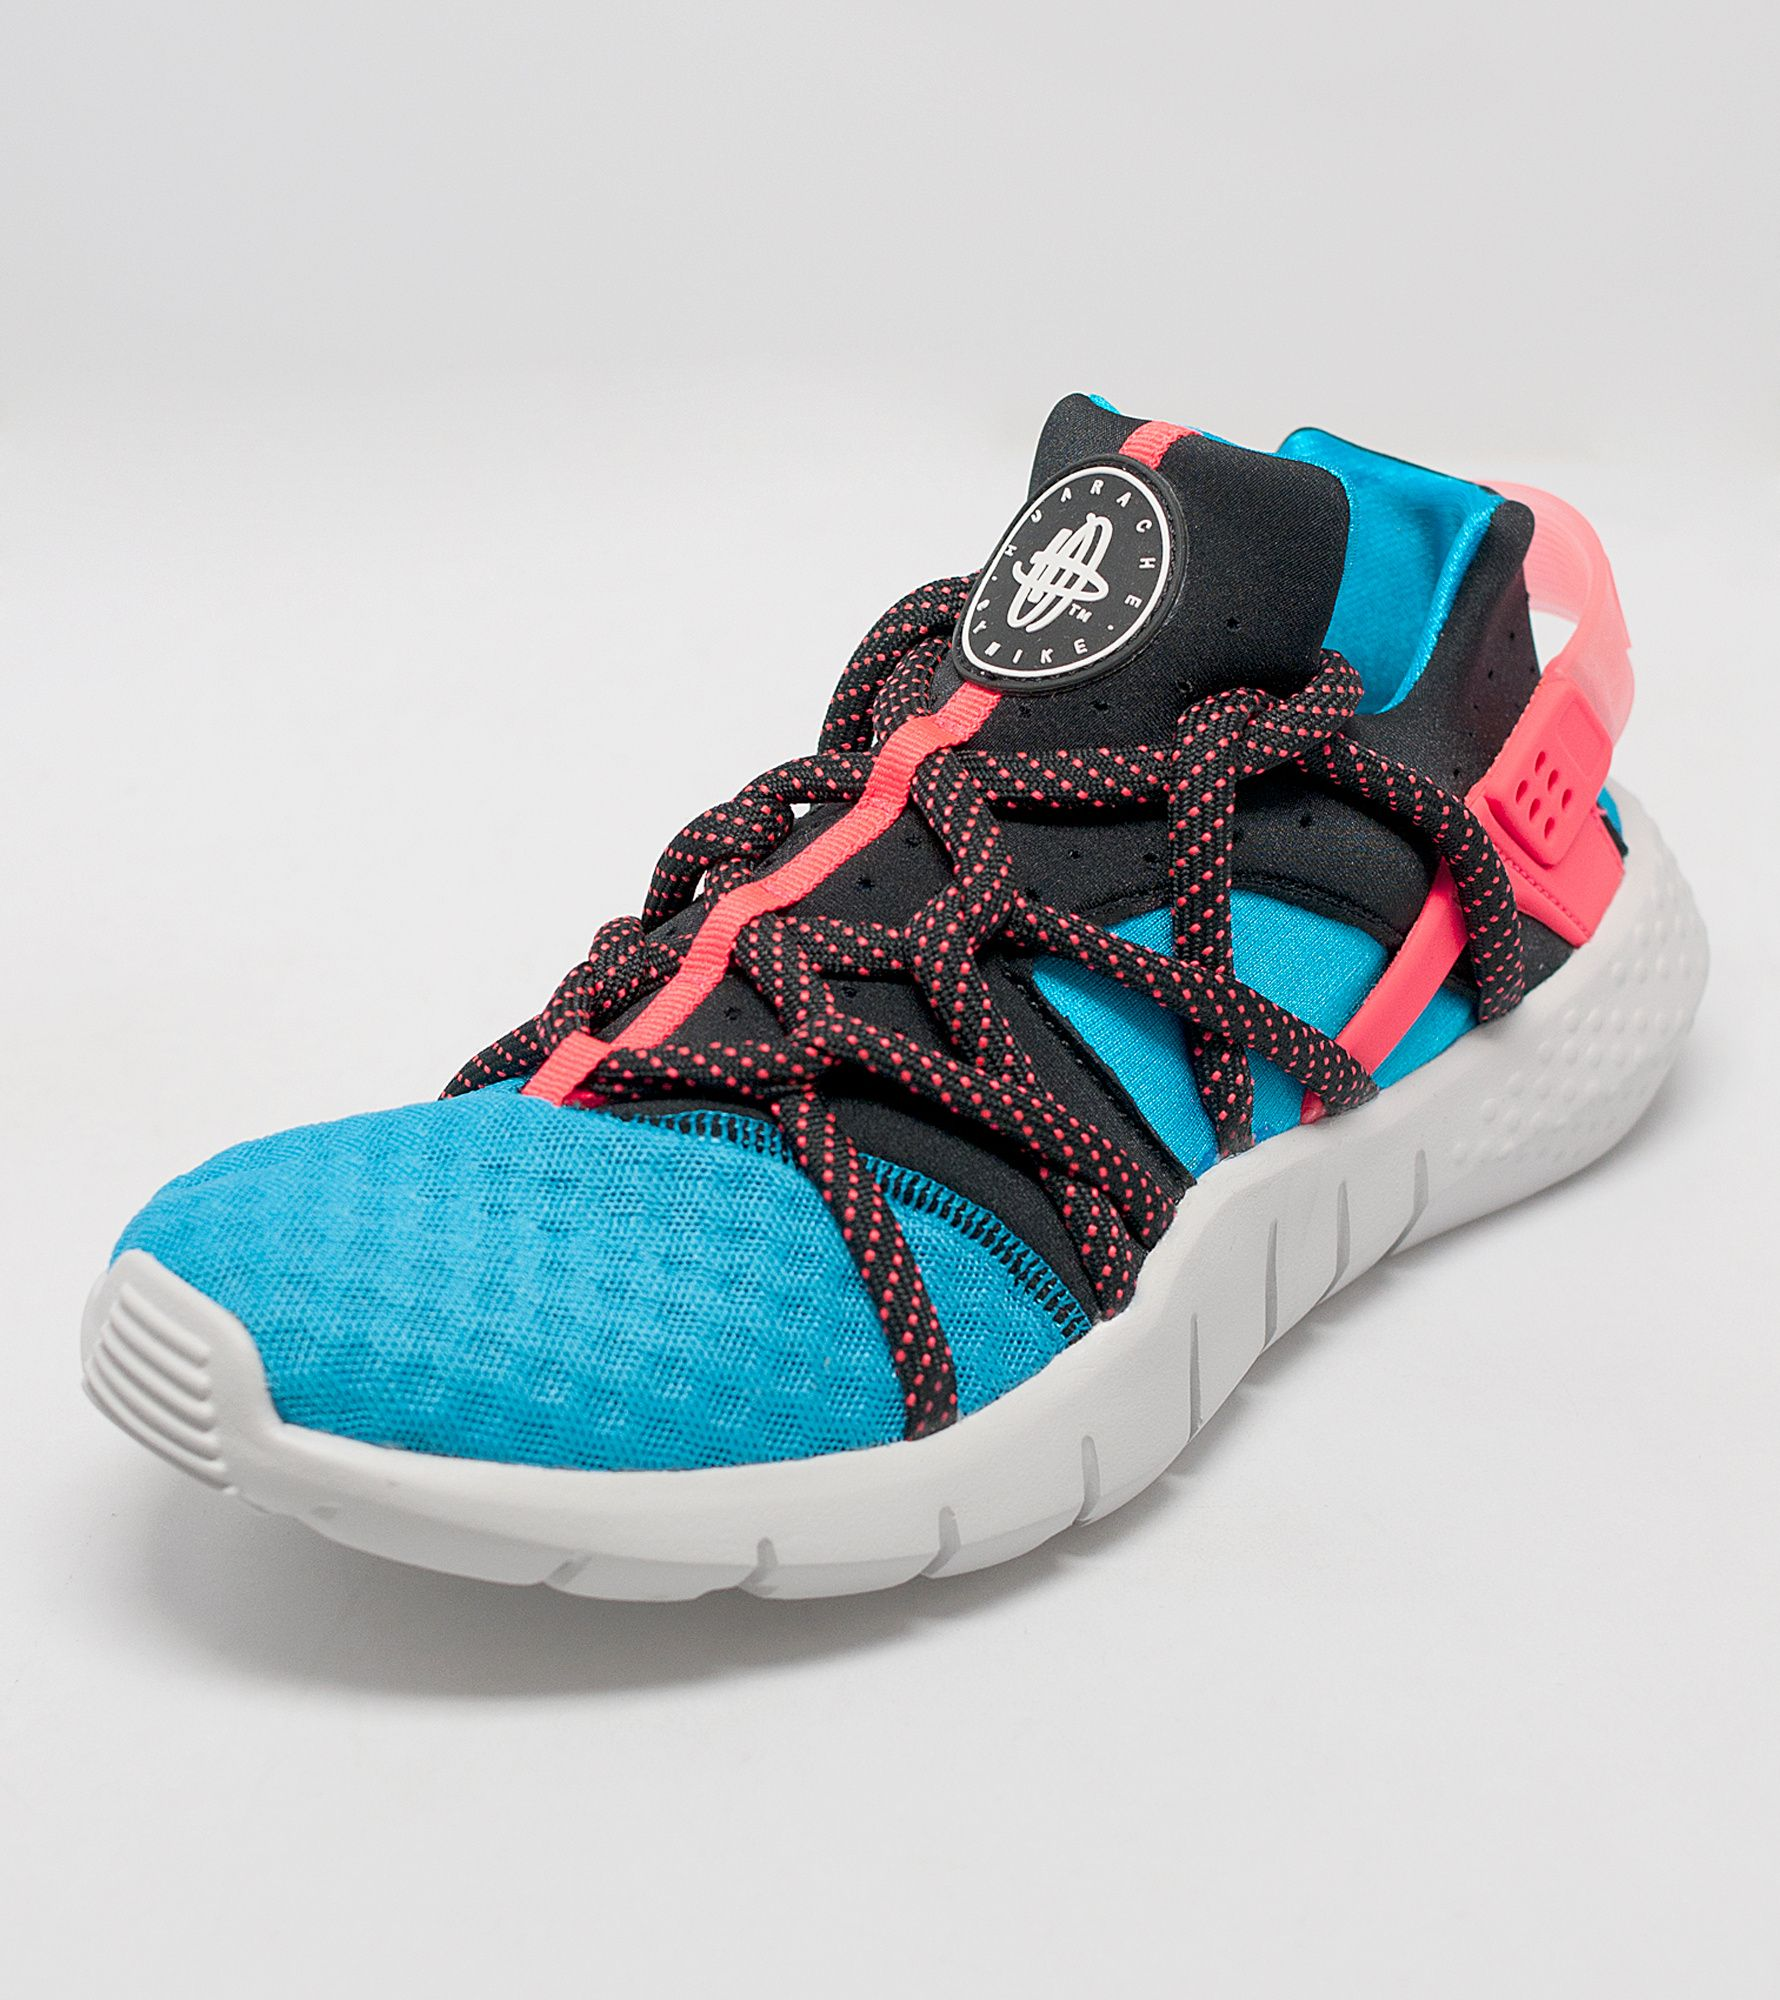 Nike Air Huarache NM